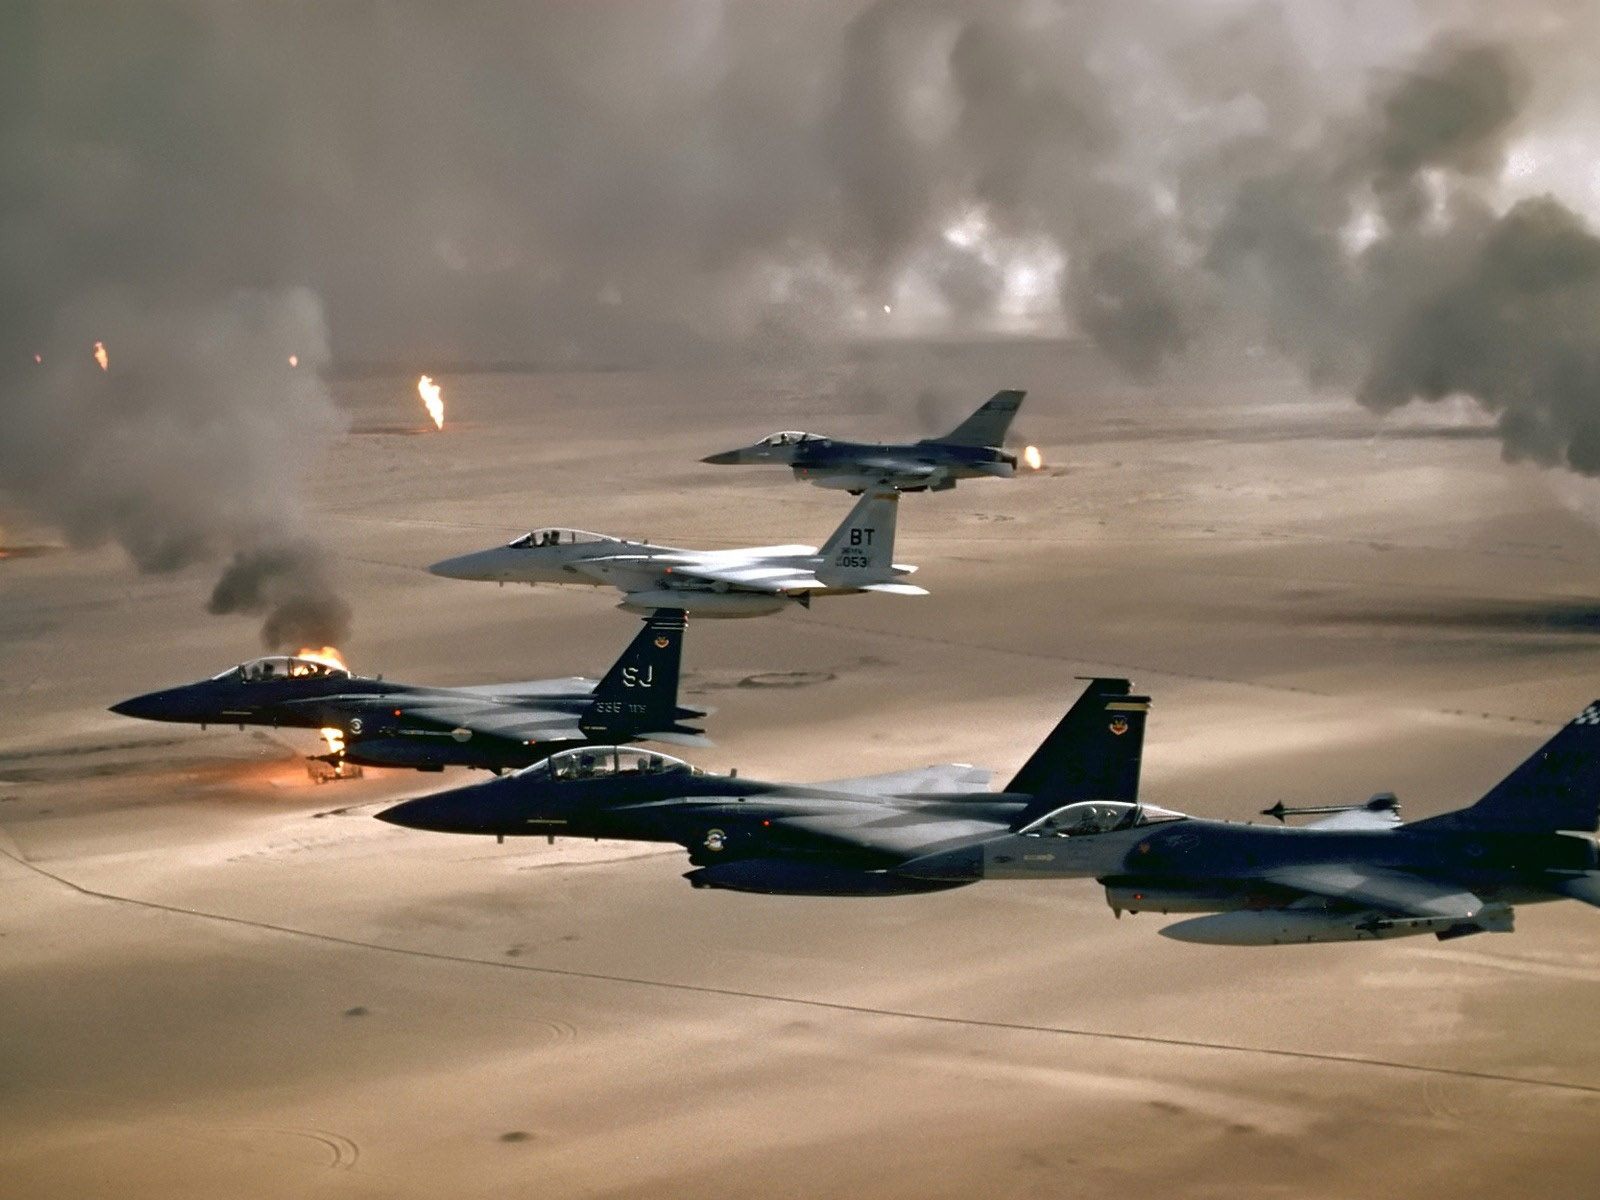 Military air operation in the desert (military aircraft)